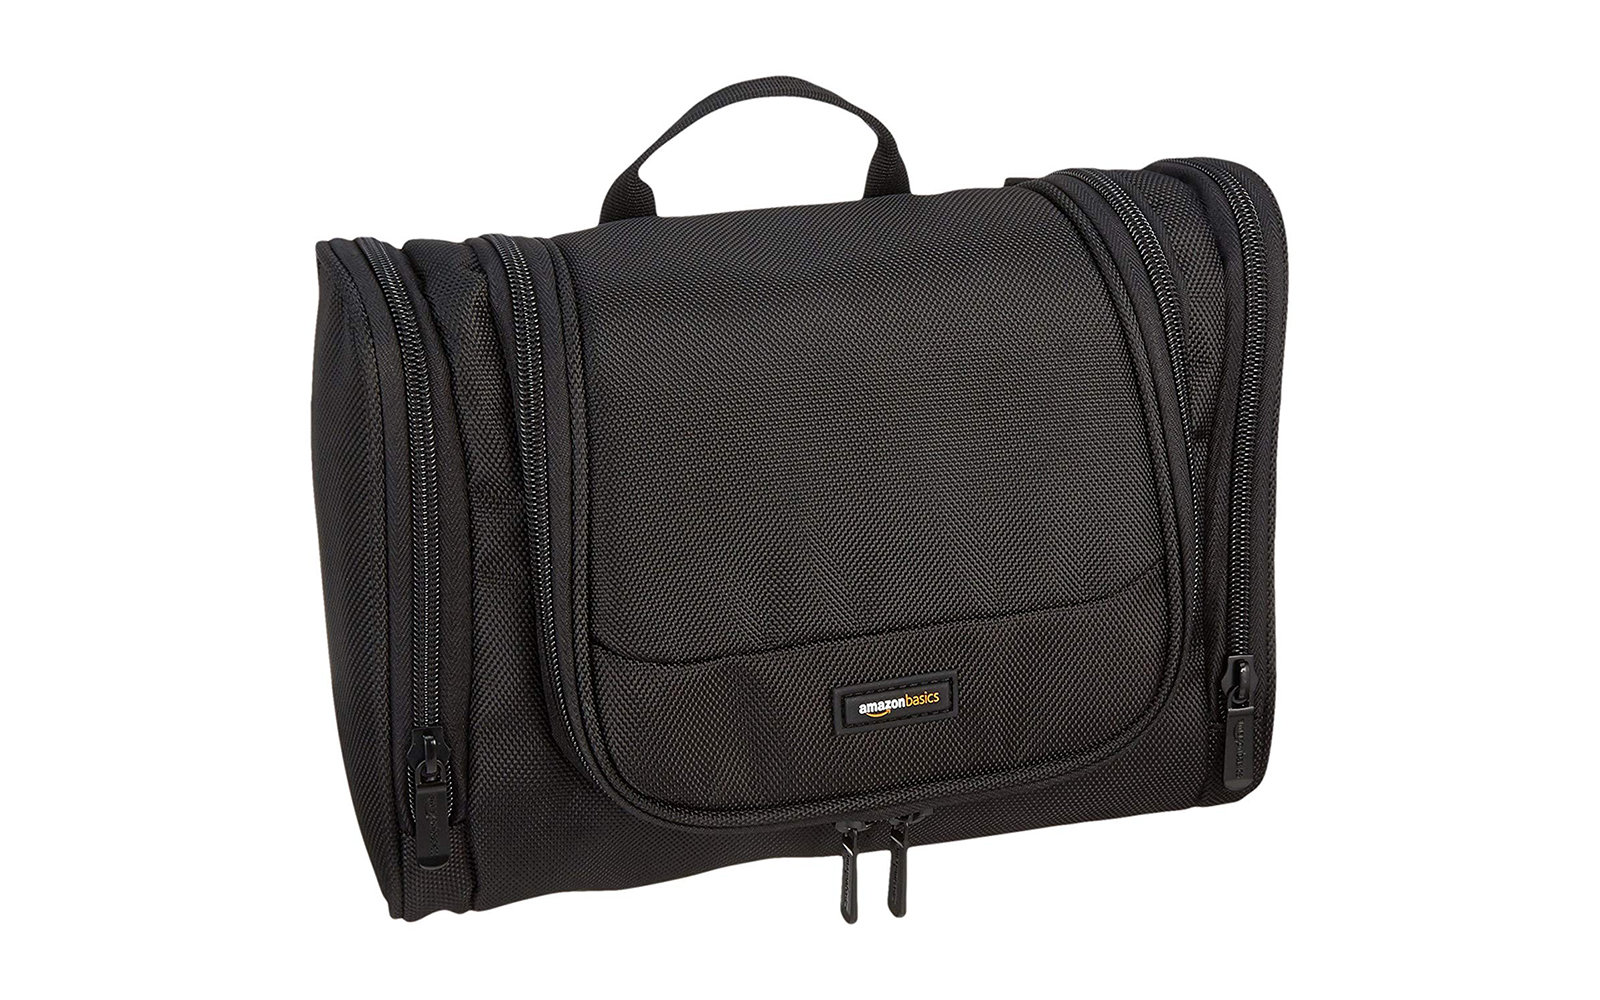 AmazonBasics Toiletry Kit